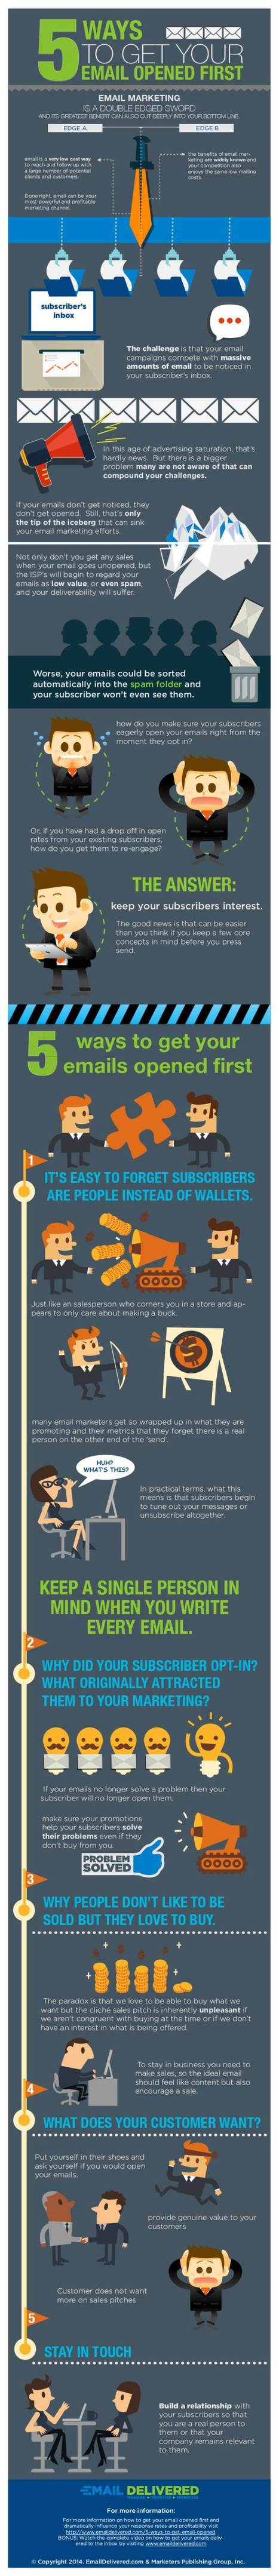 Infographic: How to make sure your emails get opened - The Hub   Social Media Marketing Tips and Tools   Scoop.it